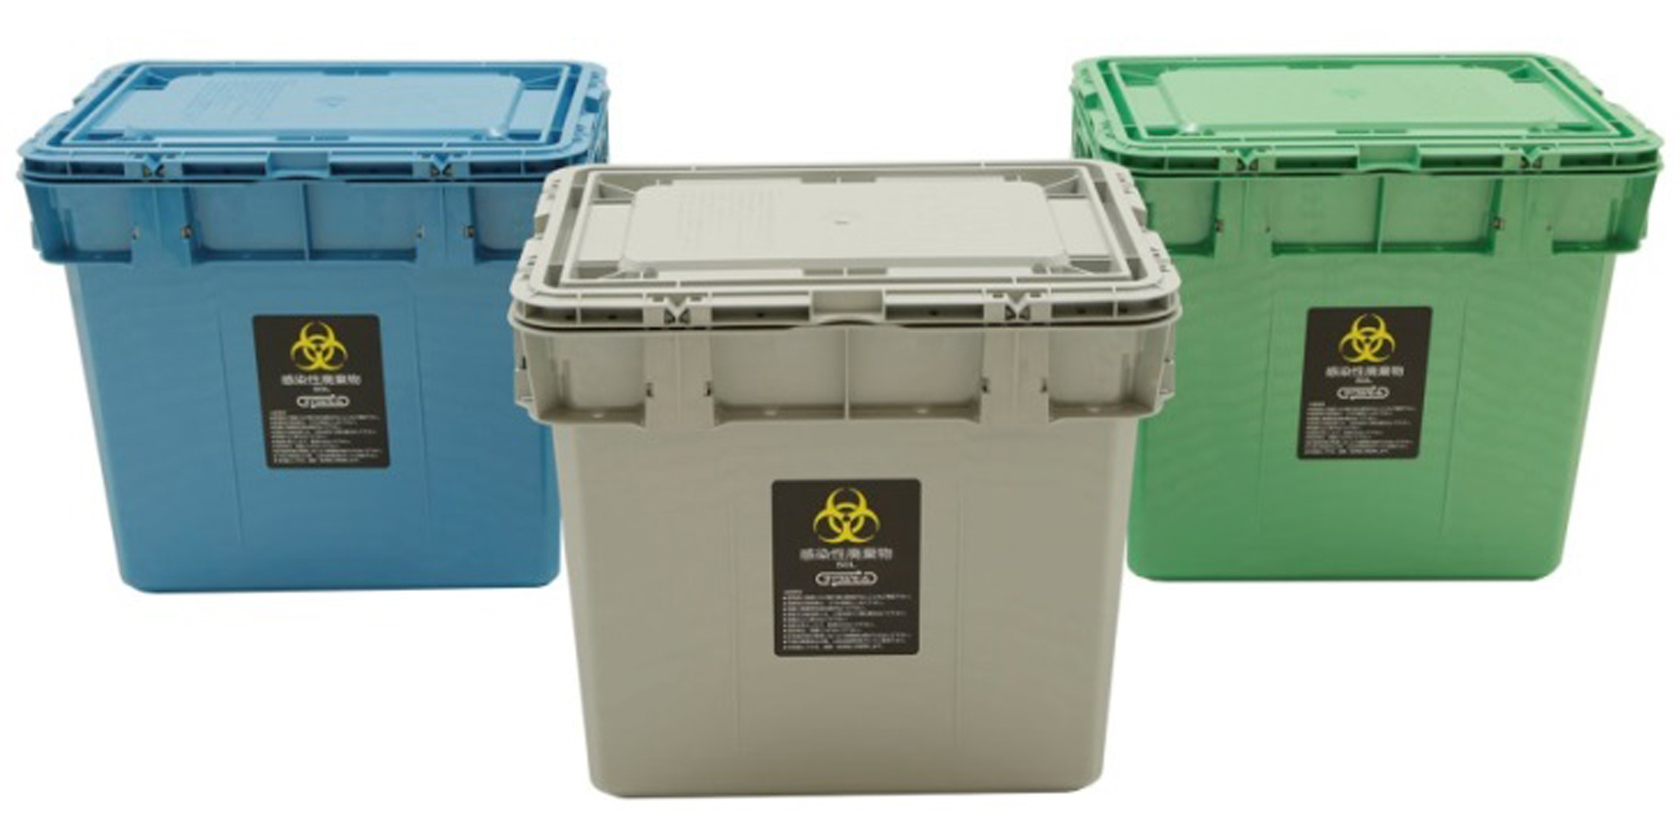 Teijin Deploys New Polycarbonateu2013Polypropylene Alloy for Use in Medical Storage Container  sc 1 st  Japan Chemical Daily & Teijin Deploys New Polycarbonateu2013Polypropylene Alloy for Use in ...